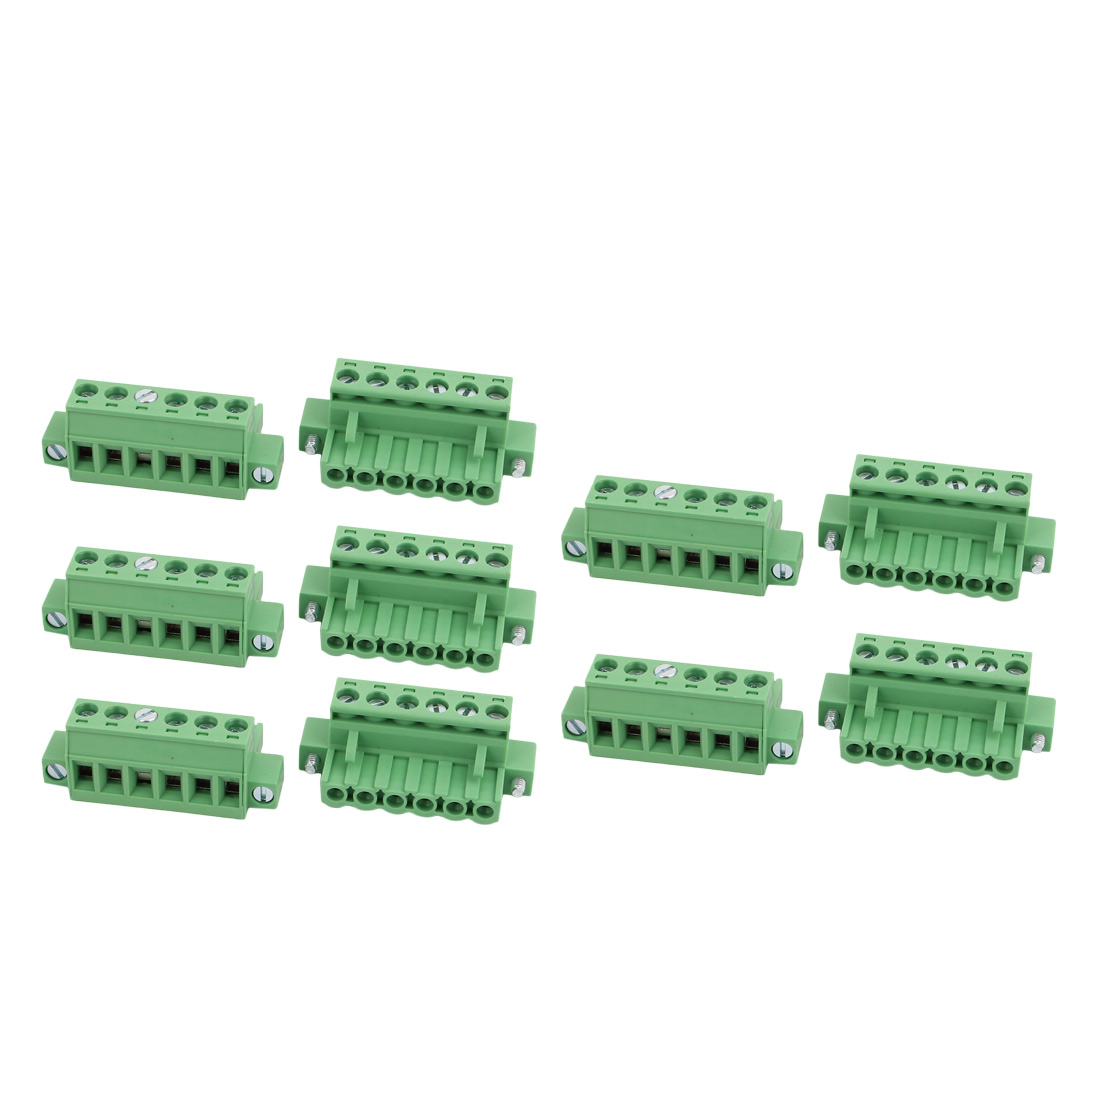 10 Pcs LC1M AC300V 15A 5.0mm Pitch 6P PCB Mount Terminal Block Wire Connector